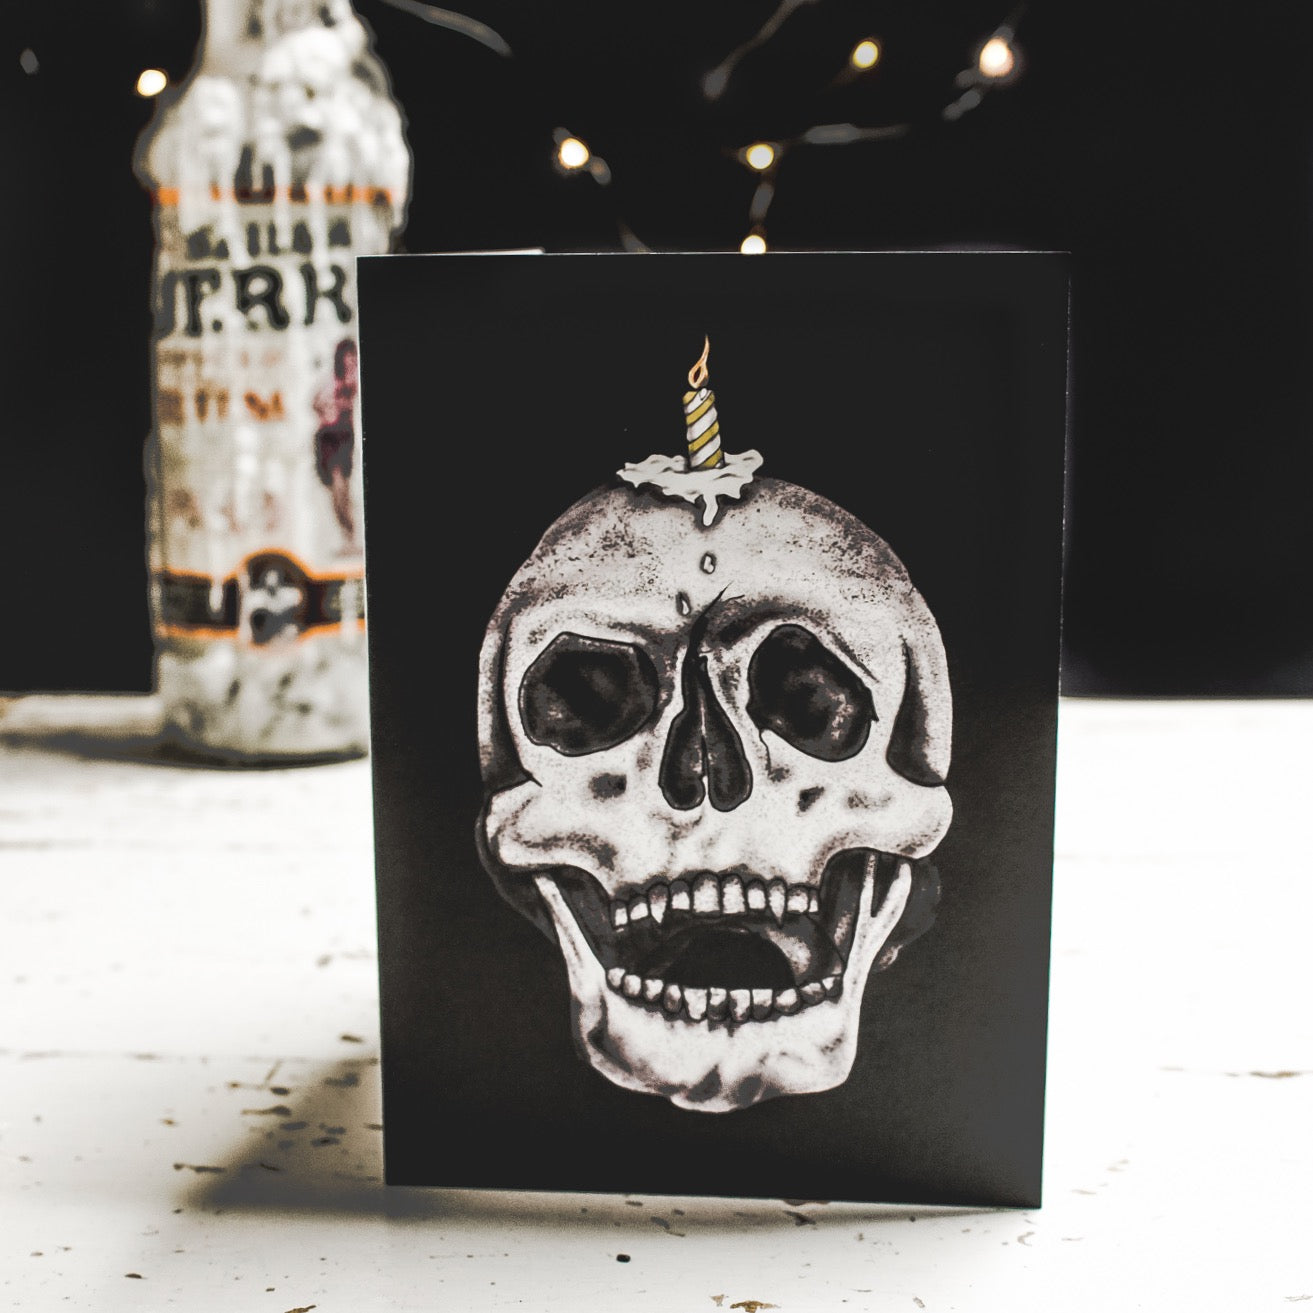 Black Birthday Card With Skull Illustration with melting candle on its head by Wayward